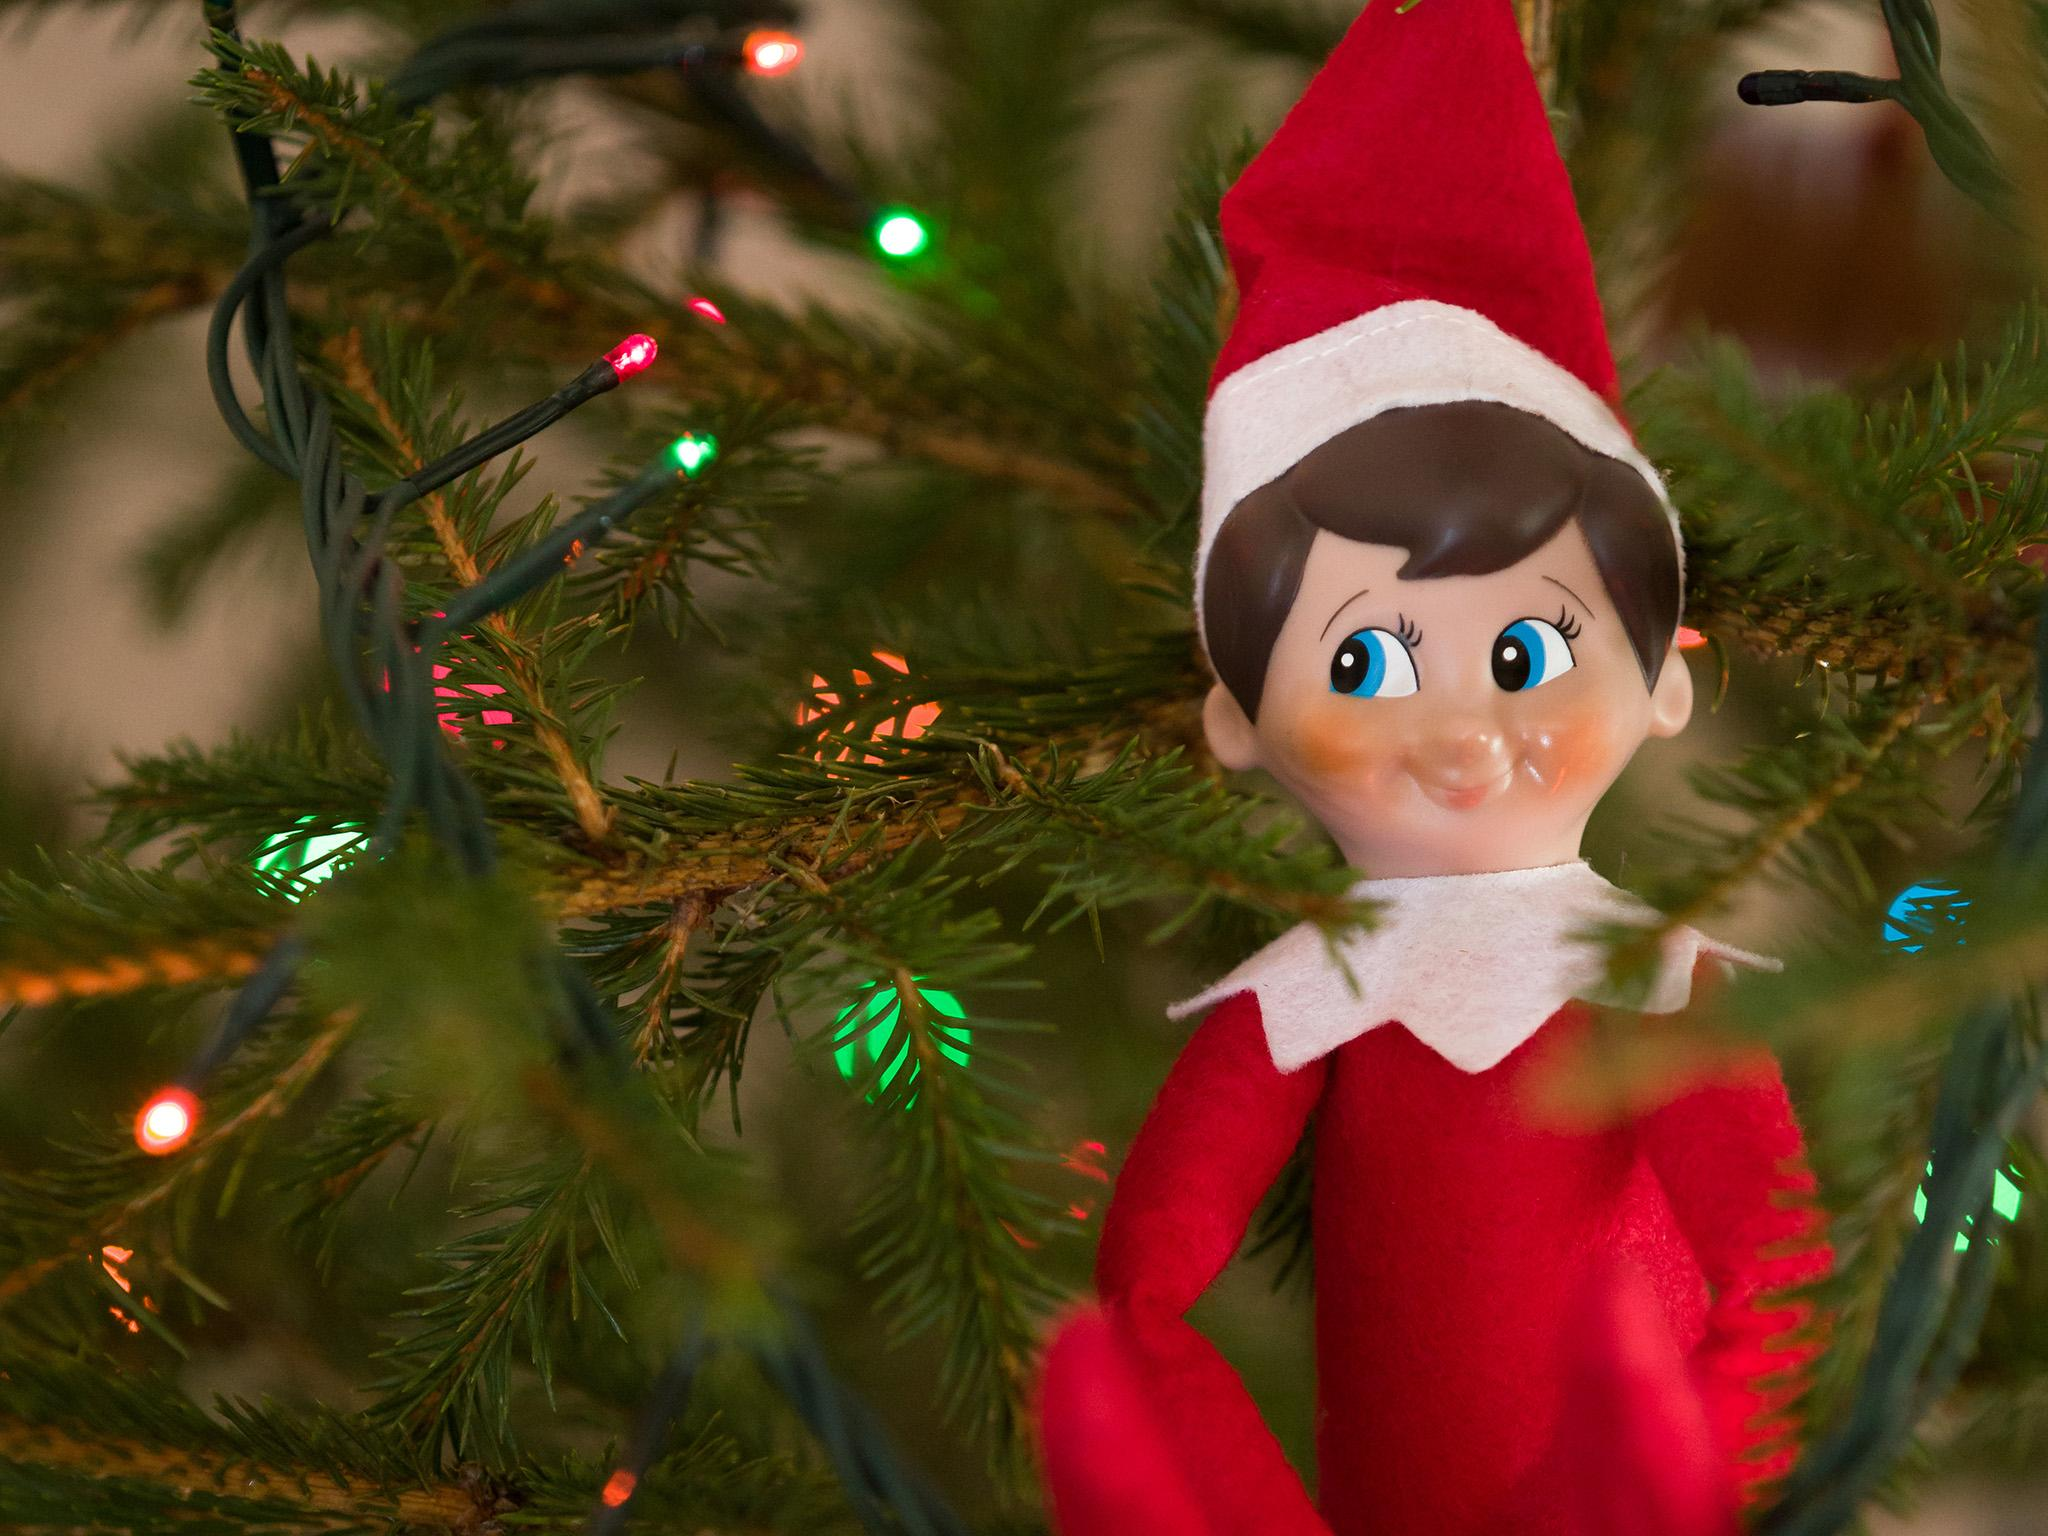 The elf on the shelf a christmas toy for kids or a mind - Christmas elf on the shelf wallpaper ...